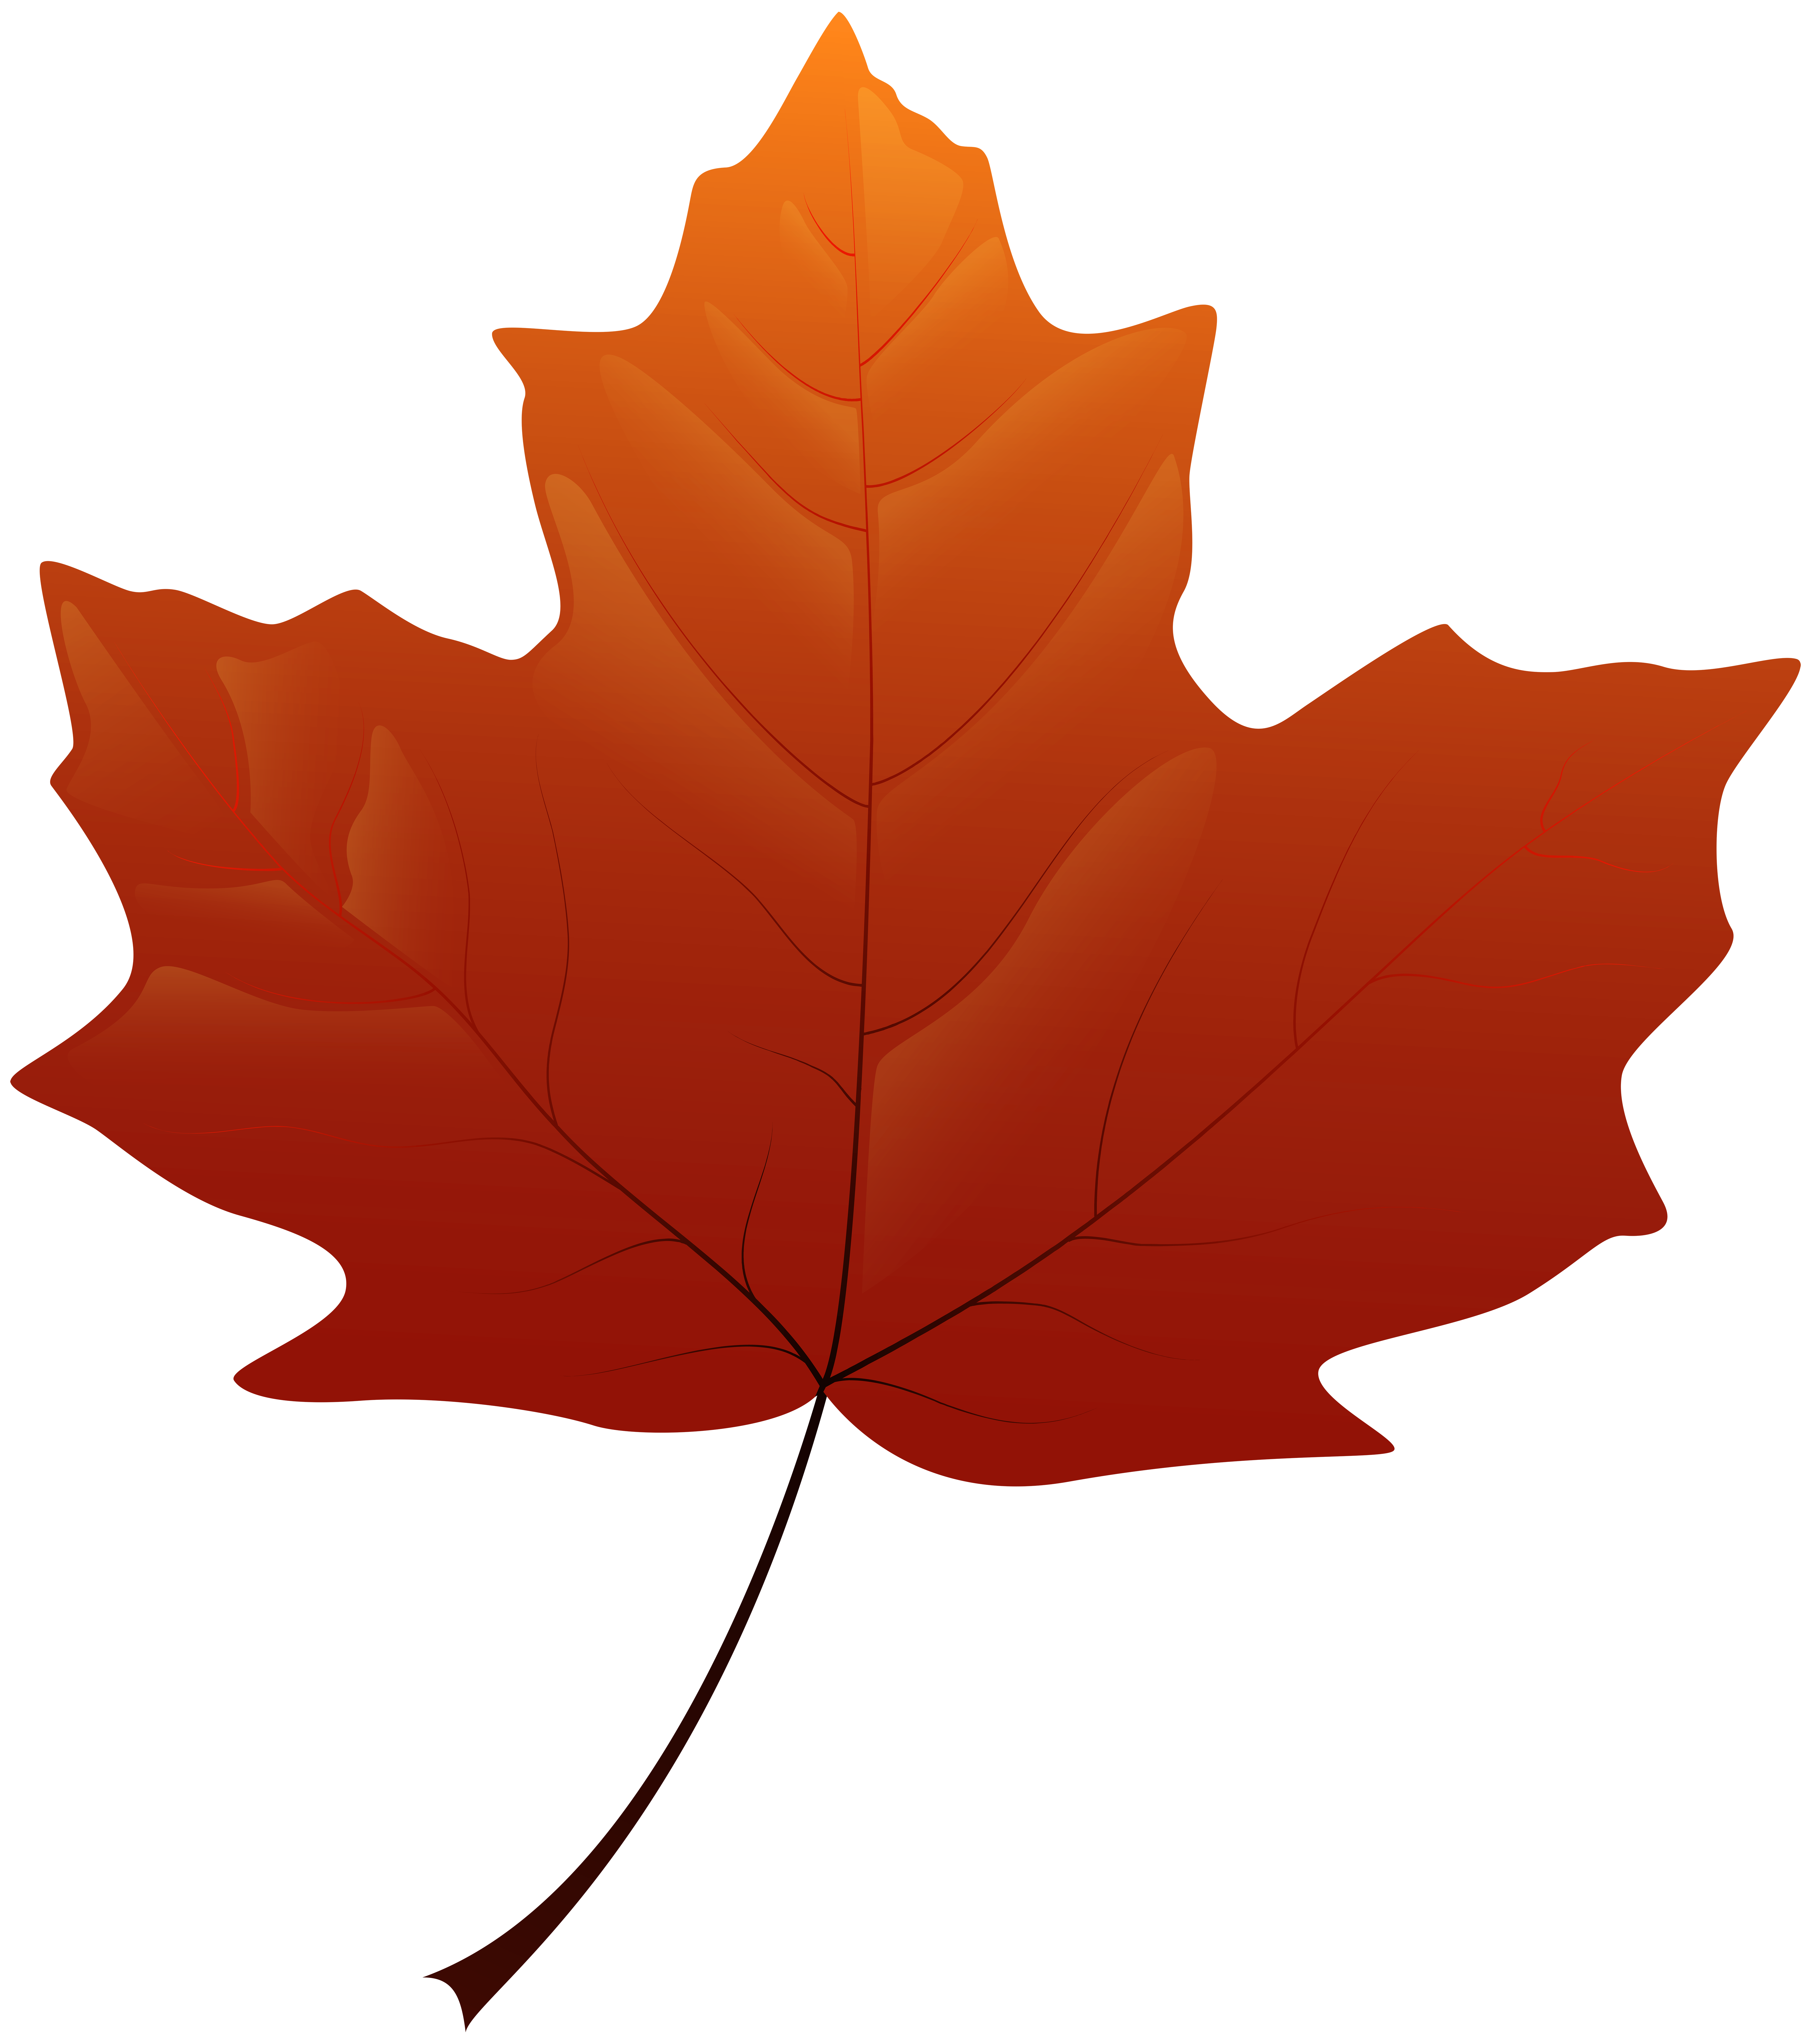 Clipart gallery autumn. Leaf png clip art